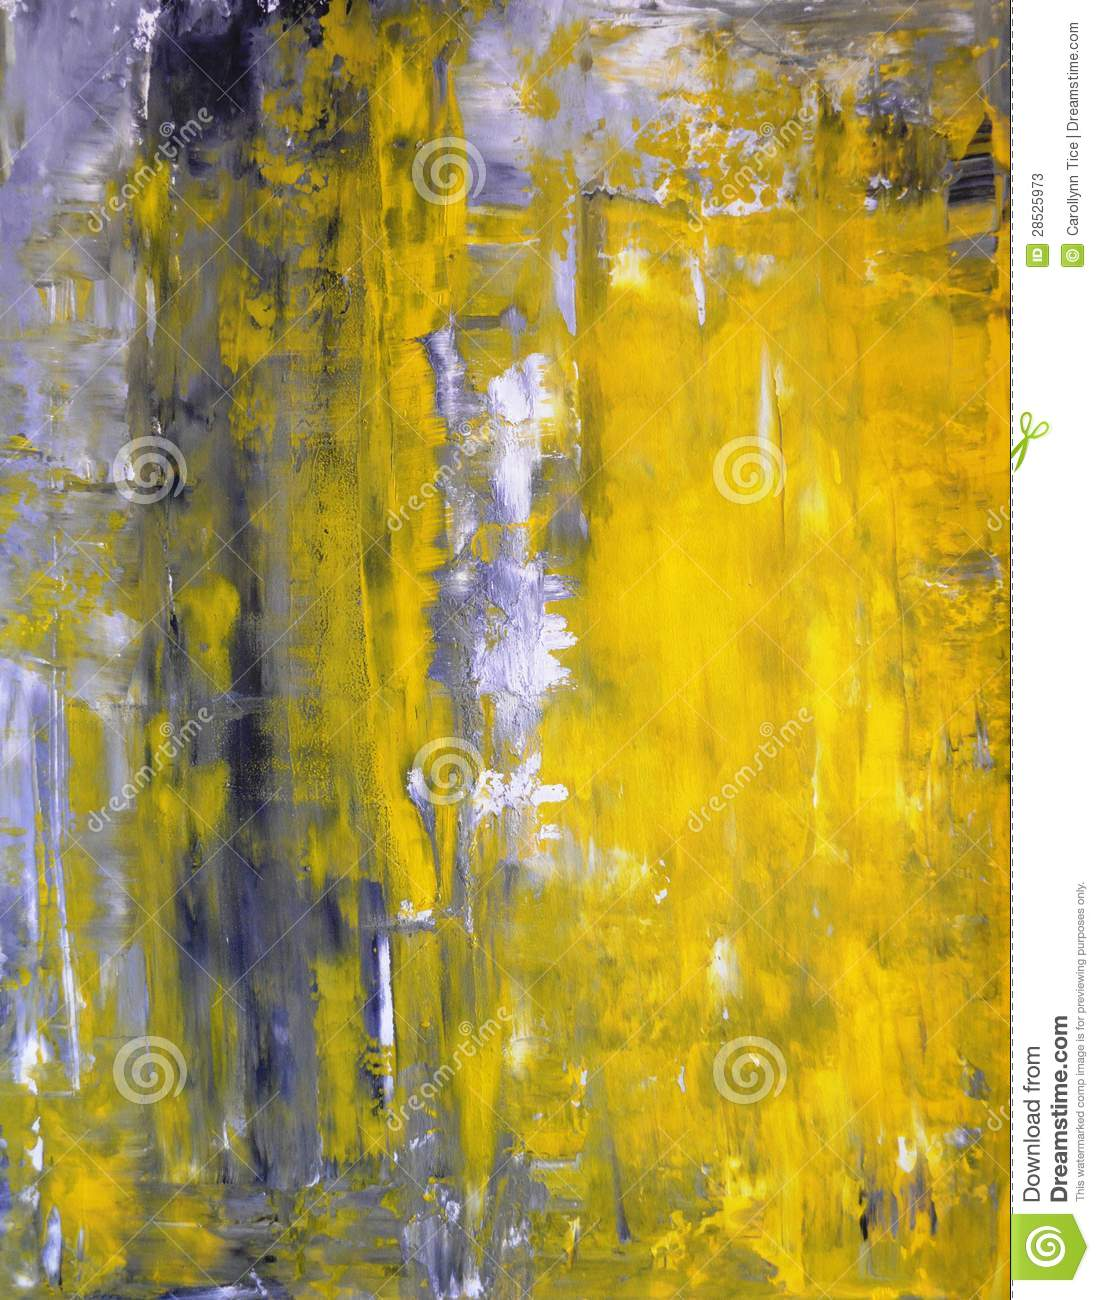 Grey And Yellow Abstract Art Painting Stock Photos - Image ...Yellow Abstract Painting